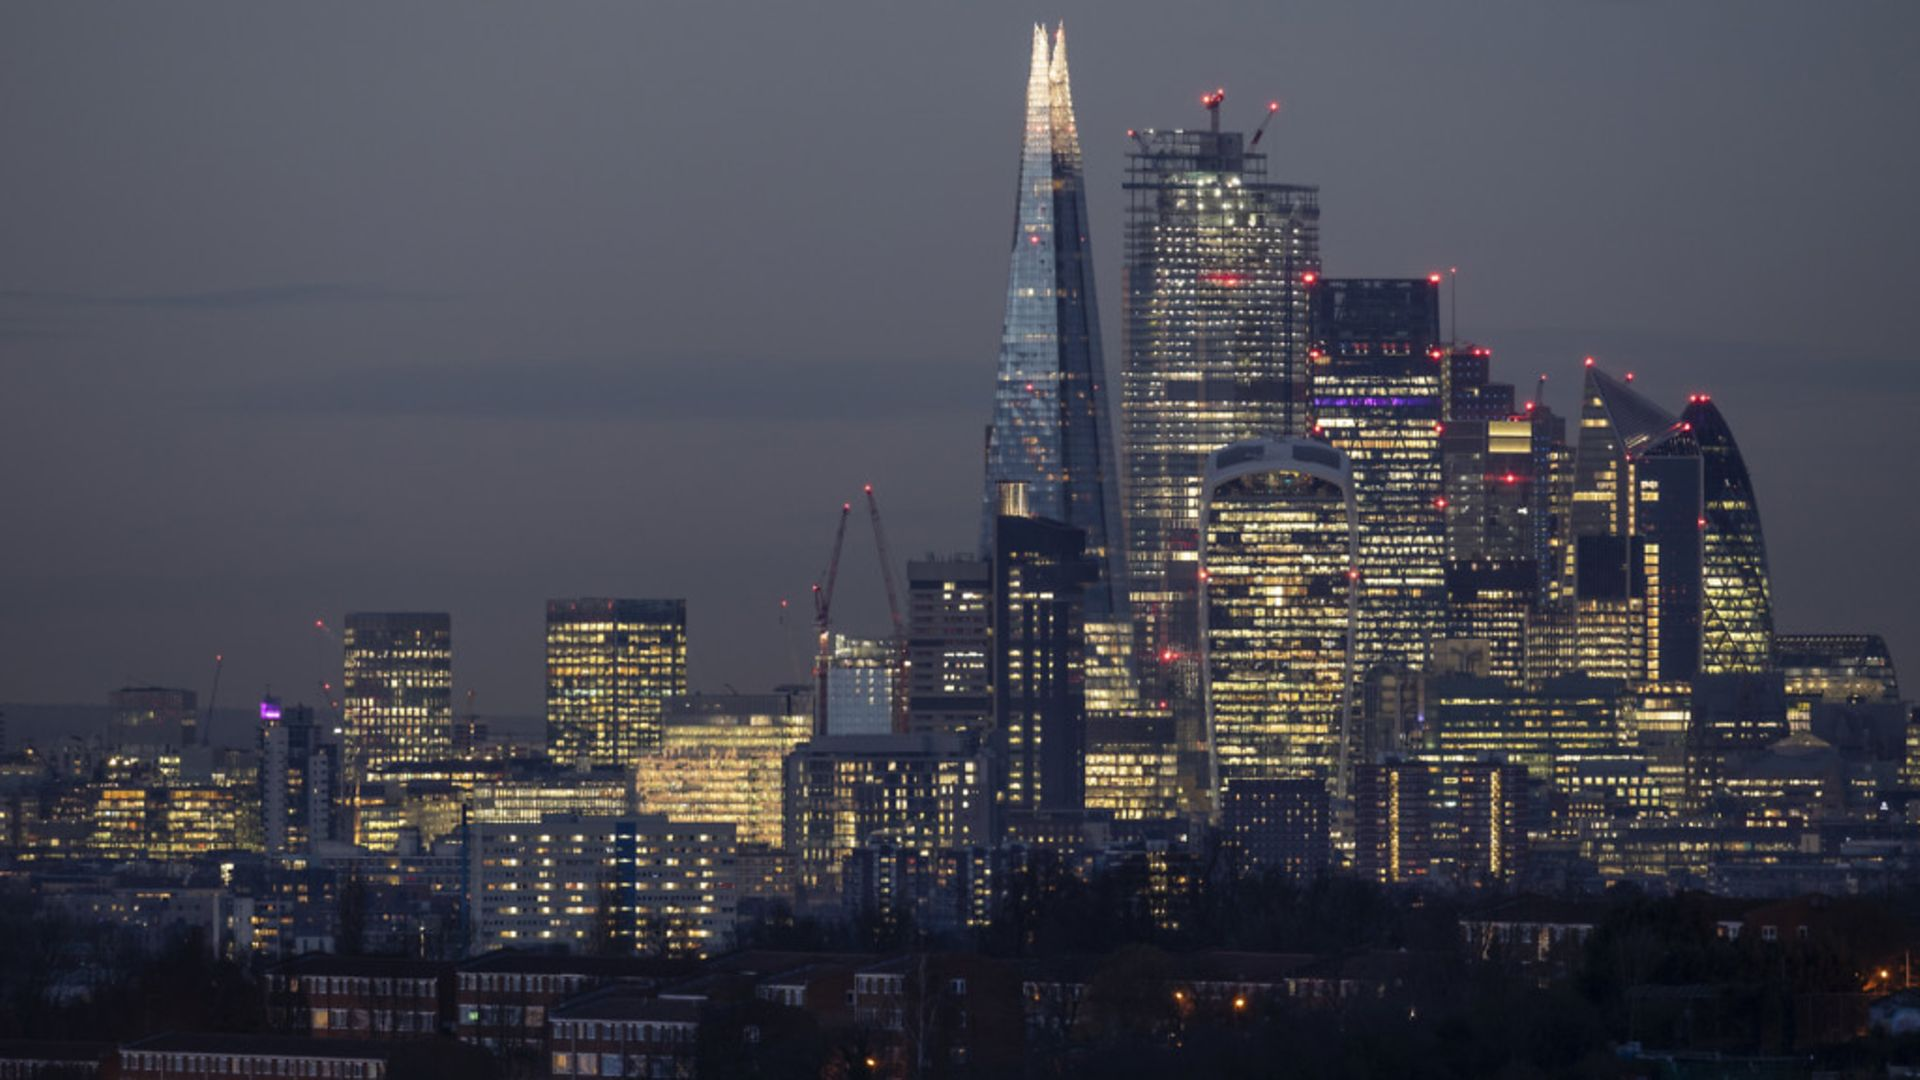 The City of London was hung out to dry during Brexit negotiations and the rest of Europe is now seeking to take advantage - Credit: Getty Images